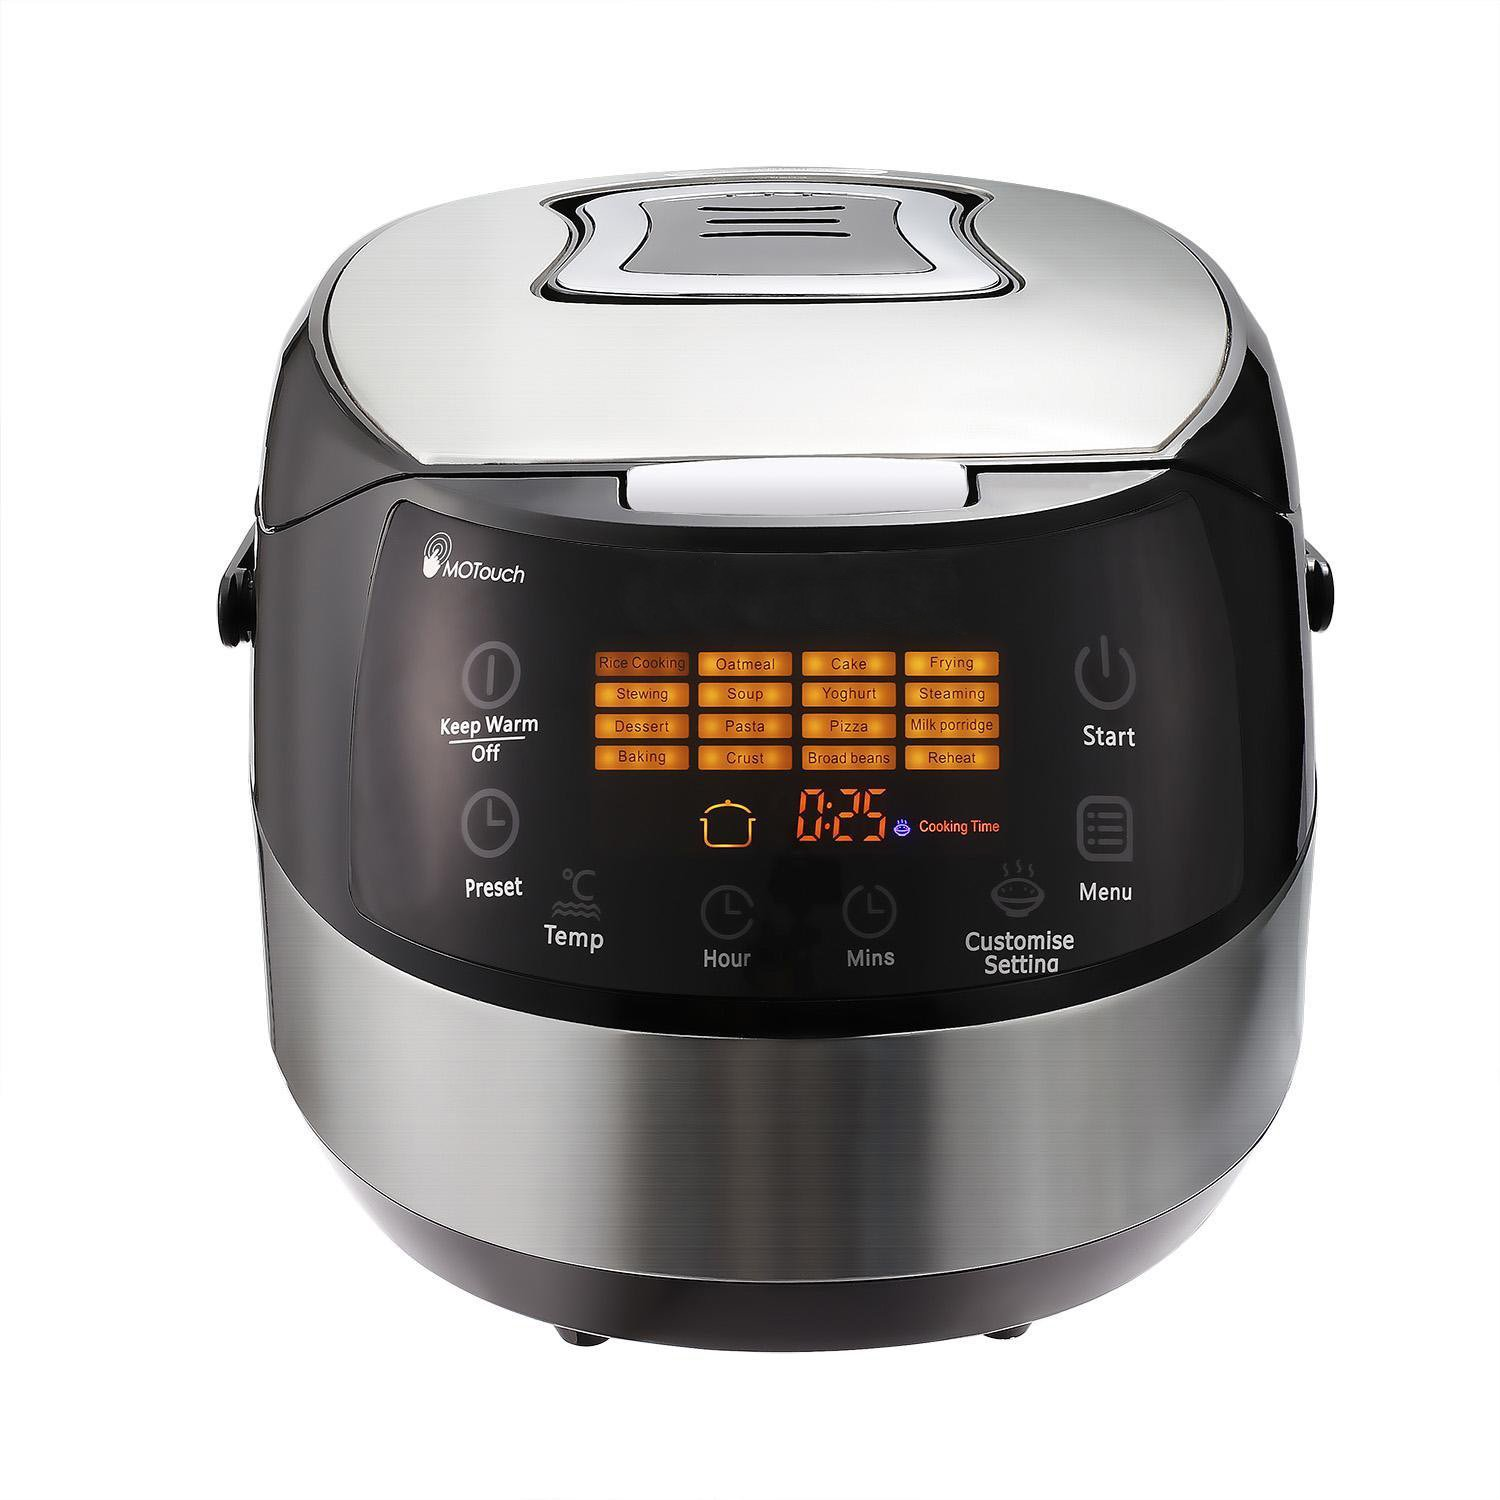 860W 110V Electric Programmable Pressure Cooker, Rice Cooker, Slow Cooker, Steamer, Porridge, Soup Maker and Warmer, 7 In 1 Multi-Cooker